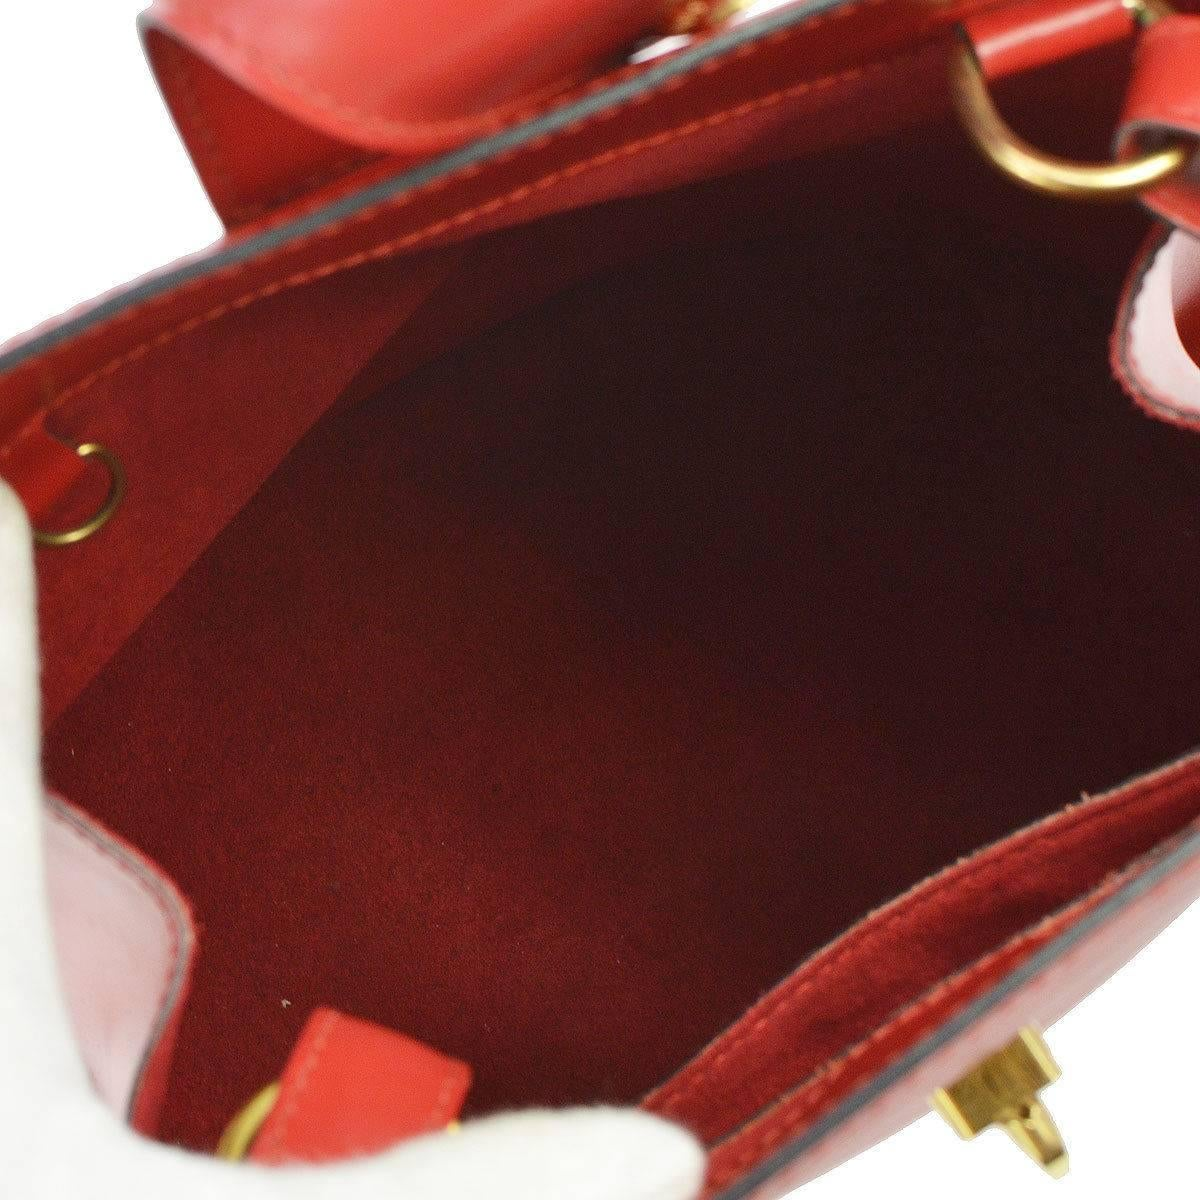 Louis Vuitton Red Leather Gold Evening Bucket Shoulder Bag zdqBEvFVhC